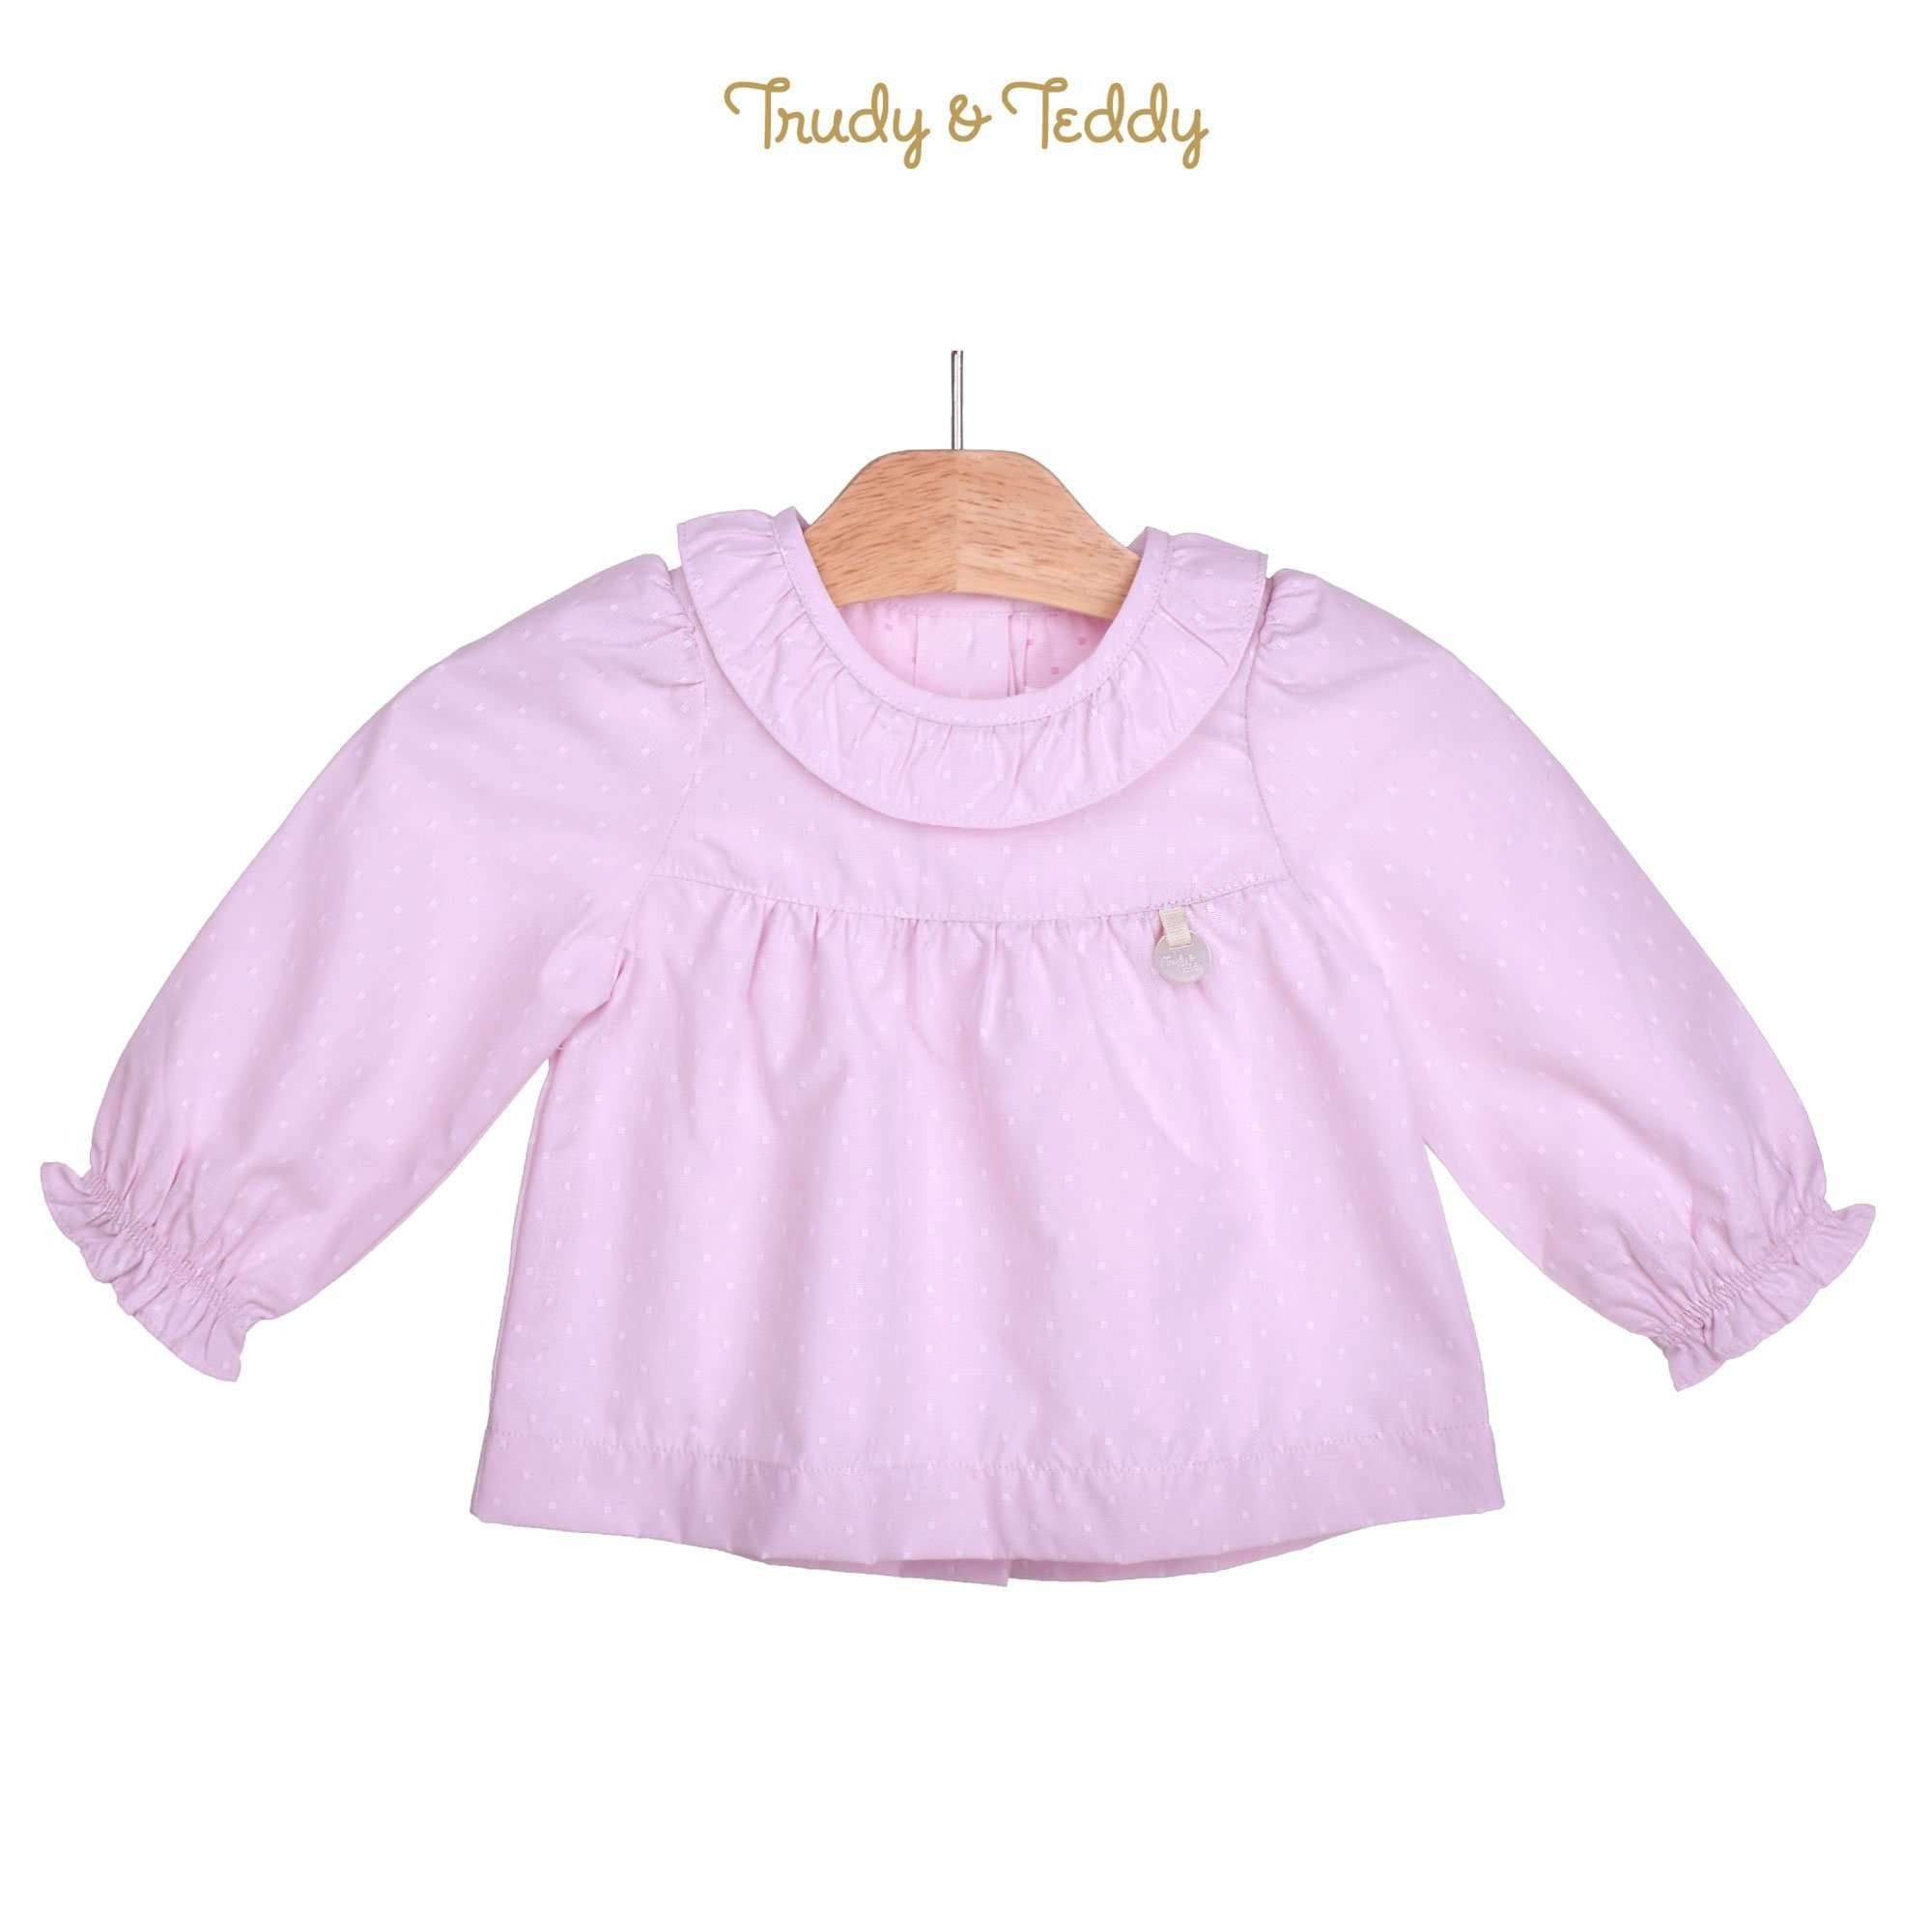 Trudy & Teddy Baby Girl Woven 3/4 Sleeve Blouse 810117-151 : Buy Trudy & Teddy online at CMG.MY